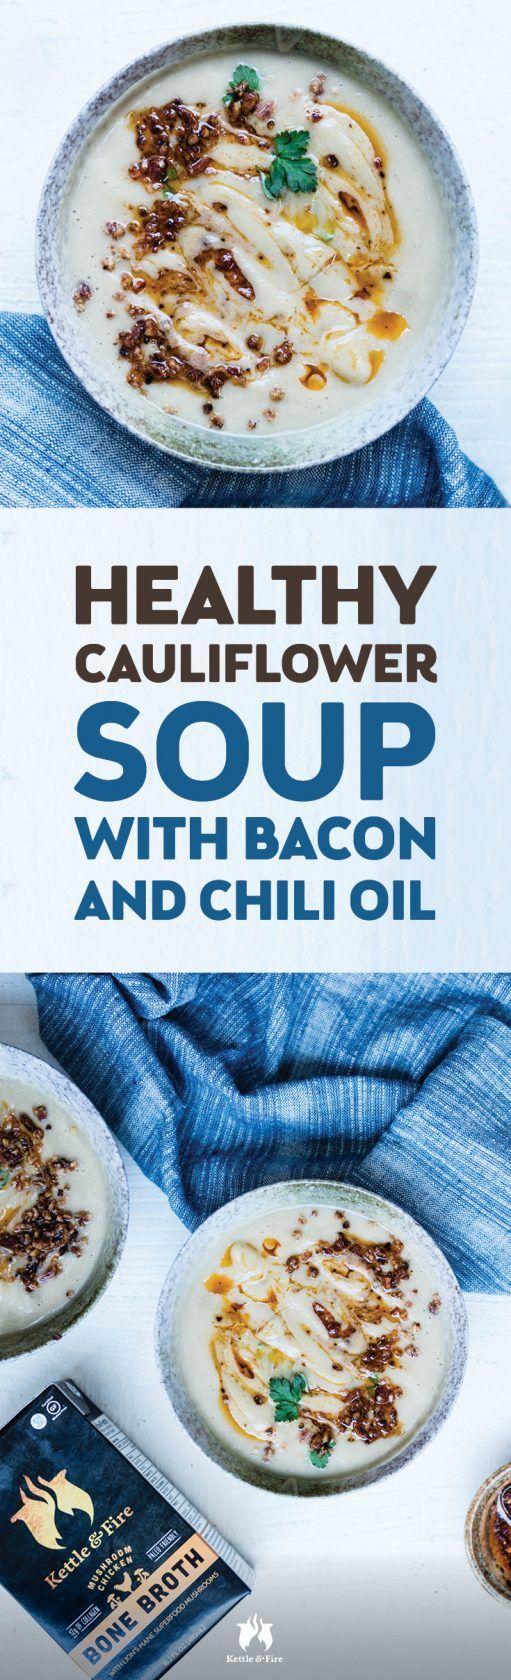 This healthy cauliflower soup recipe is like a healthier, leaner version of potato soup. And thanks to the addition of Kettle & Fire's collagen-rich chicken bone broth (a better option than chicken stock or chicken broth), it's also packed with protein and essential vitamins.